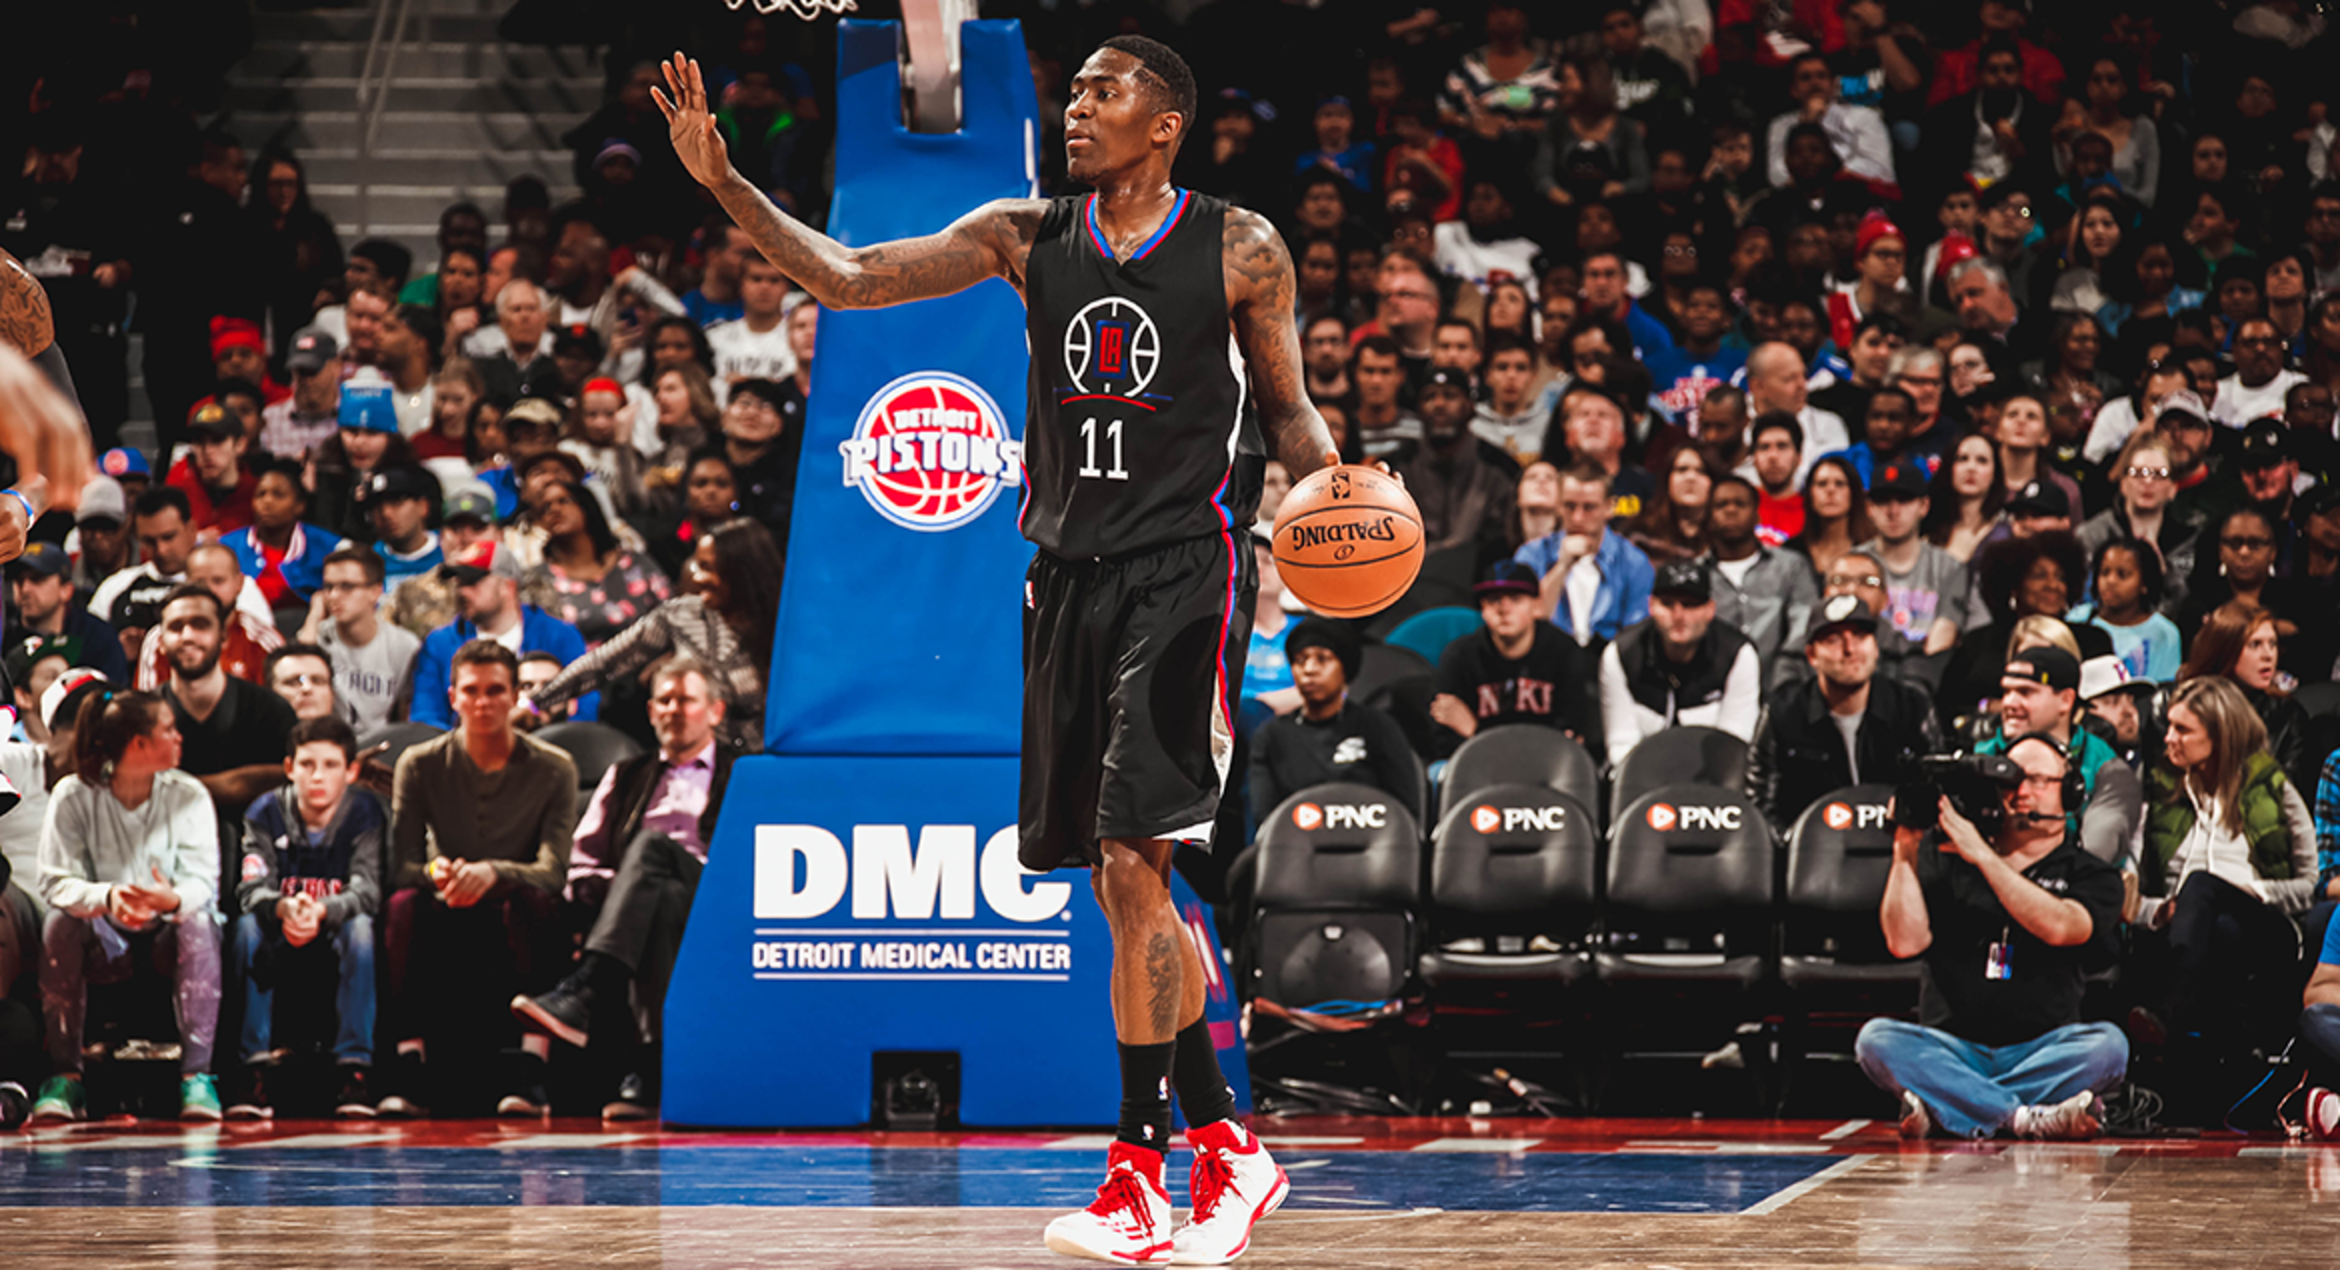 Clippers Offer Credit, Not Excuses, After Win Streak Snapped In Detroit